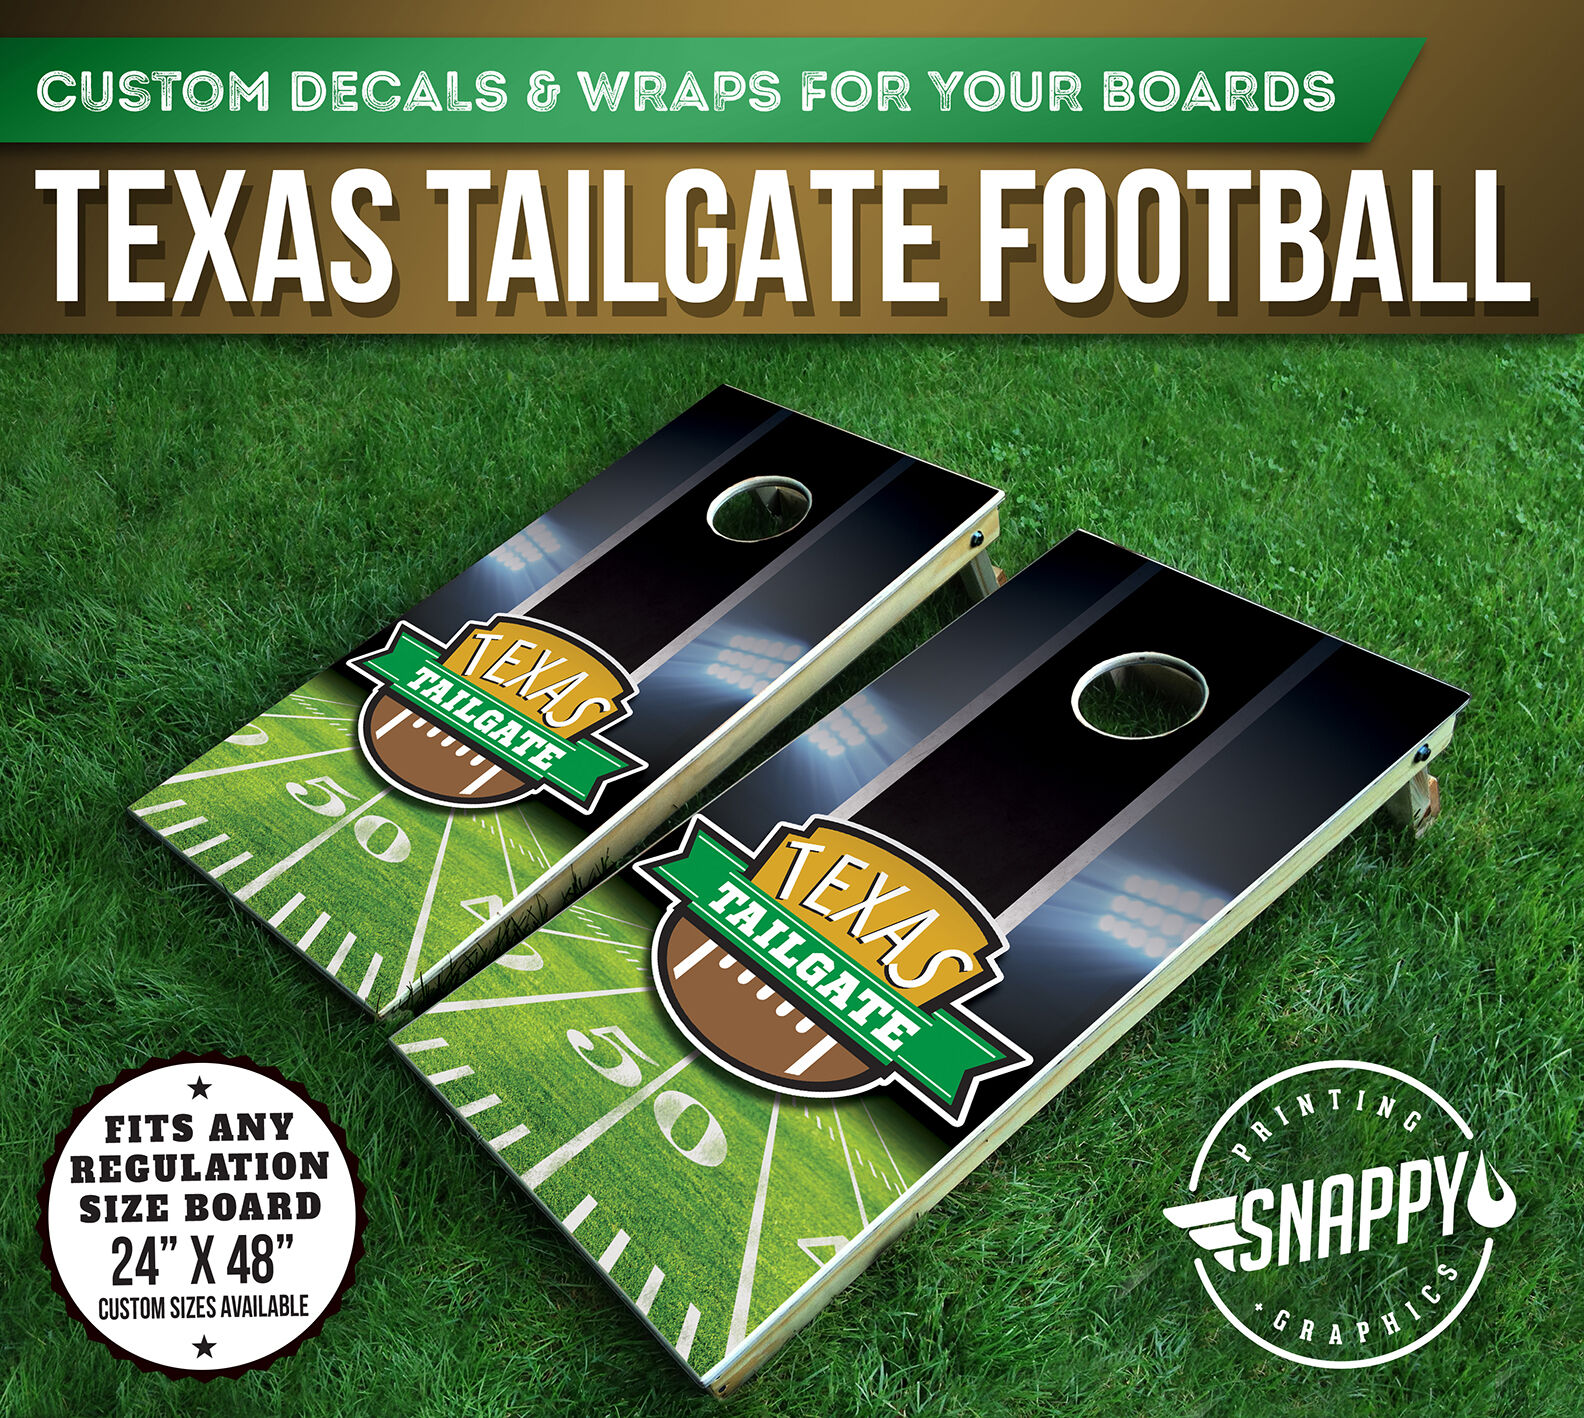 TEXAS TAILGATE CORNHOLE DECALS, Bag Toss Board Wraps, SUPERBOWL 2017 - PAIR